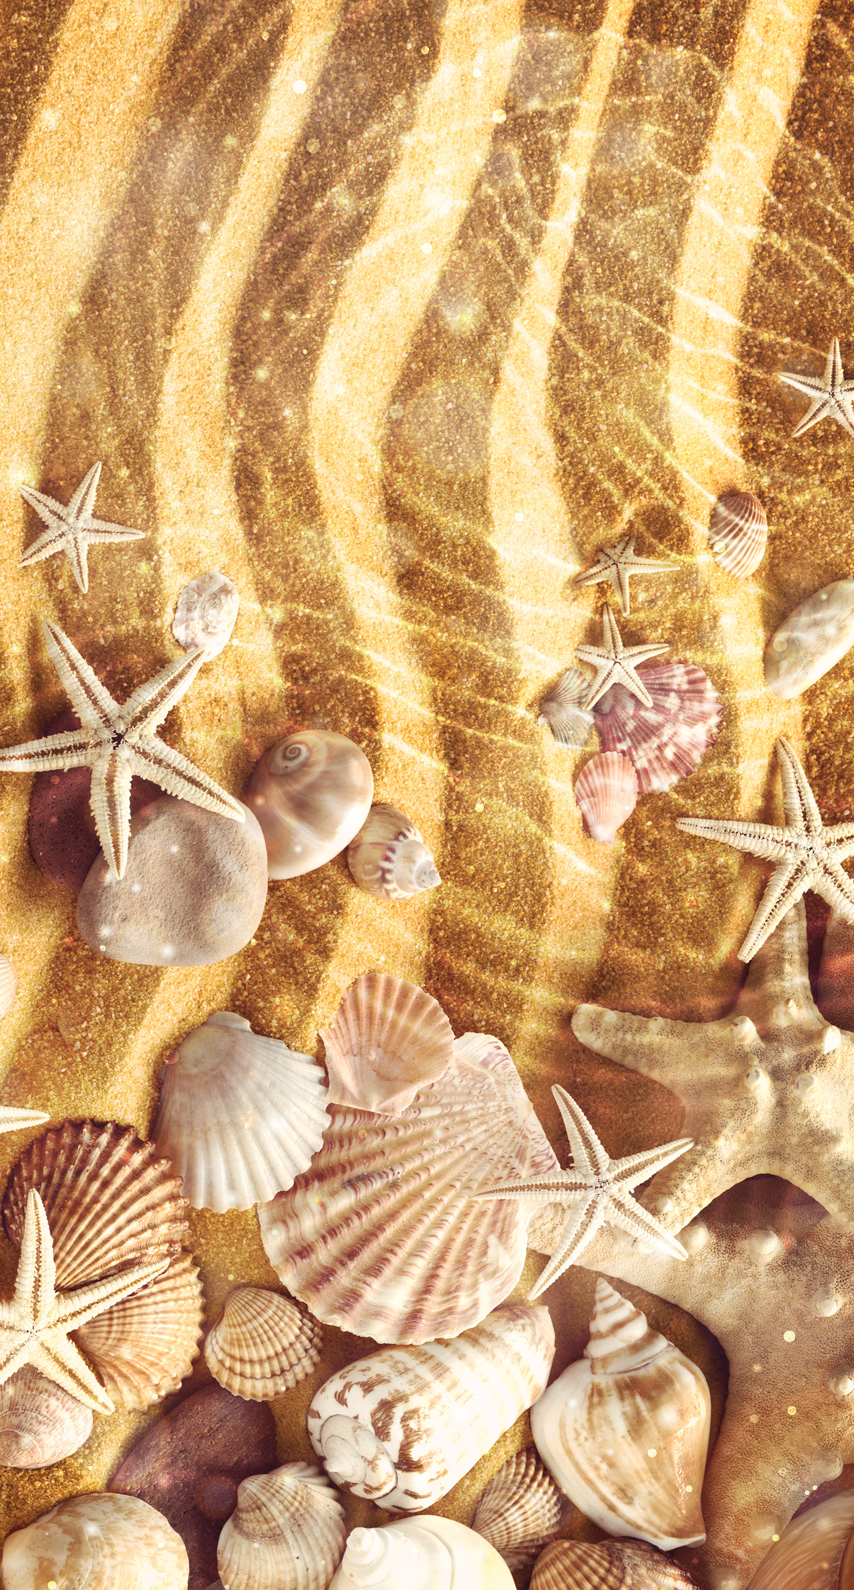 desktop, shape, no person, gold, shining, decoration, color, closeup, picture frame, seashell, shell